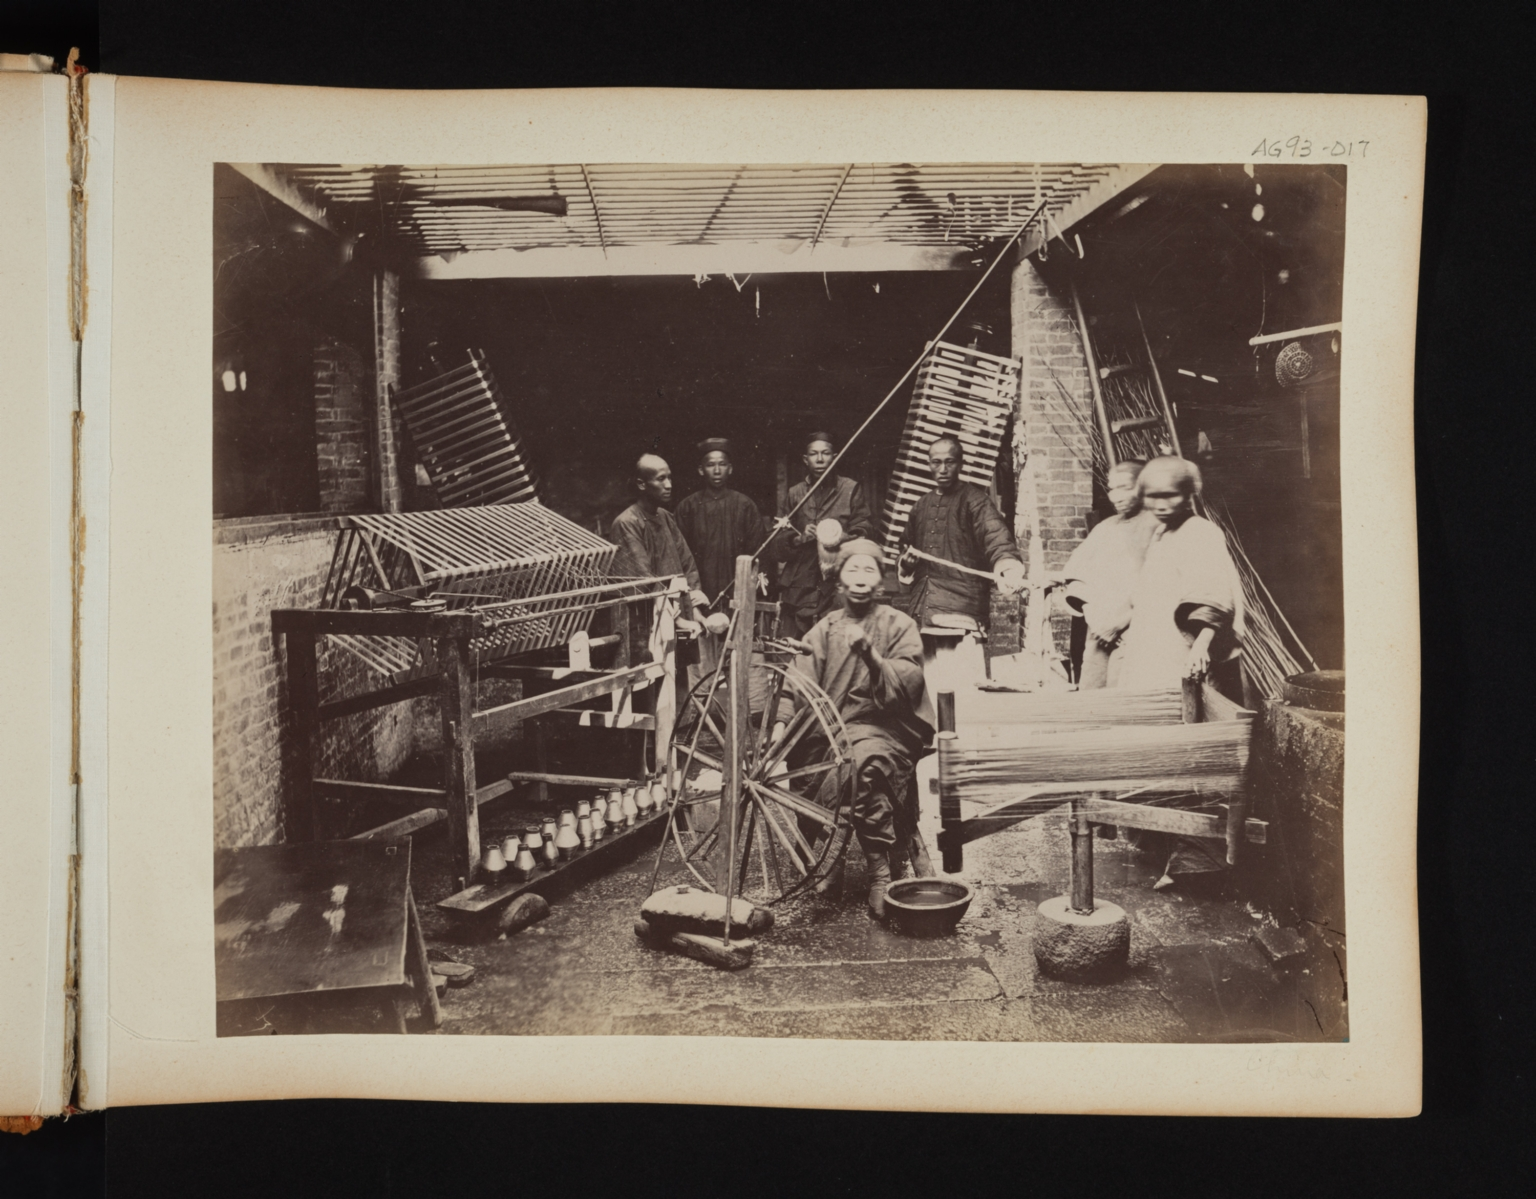 Group of chinese men in a textile workshop.